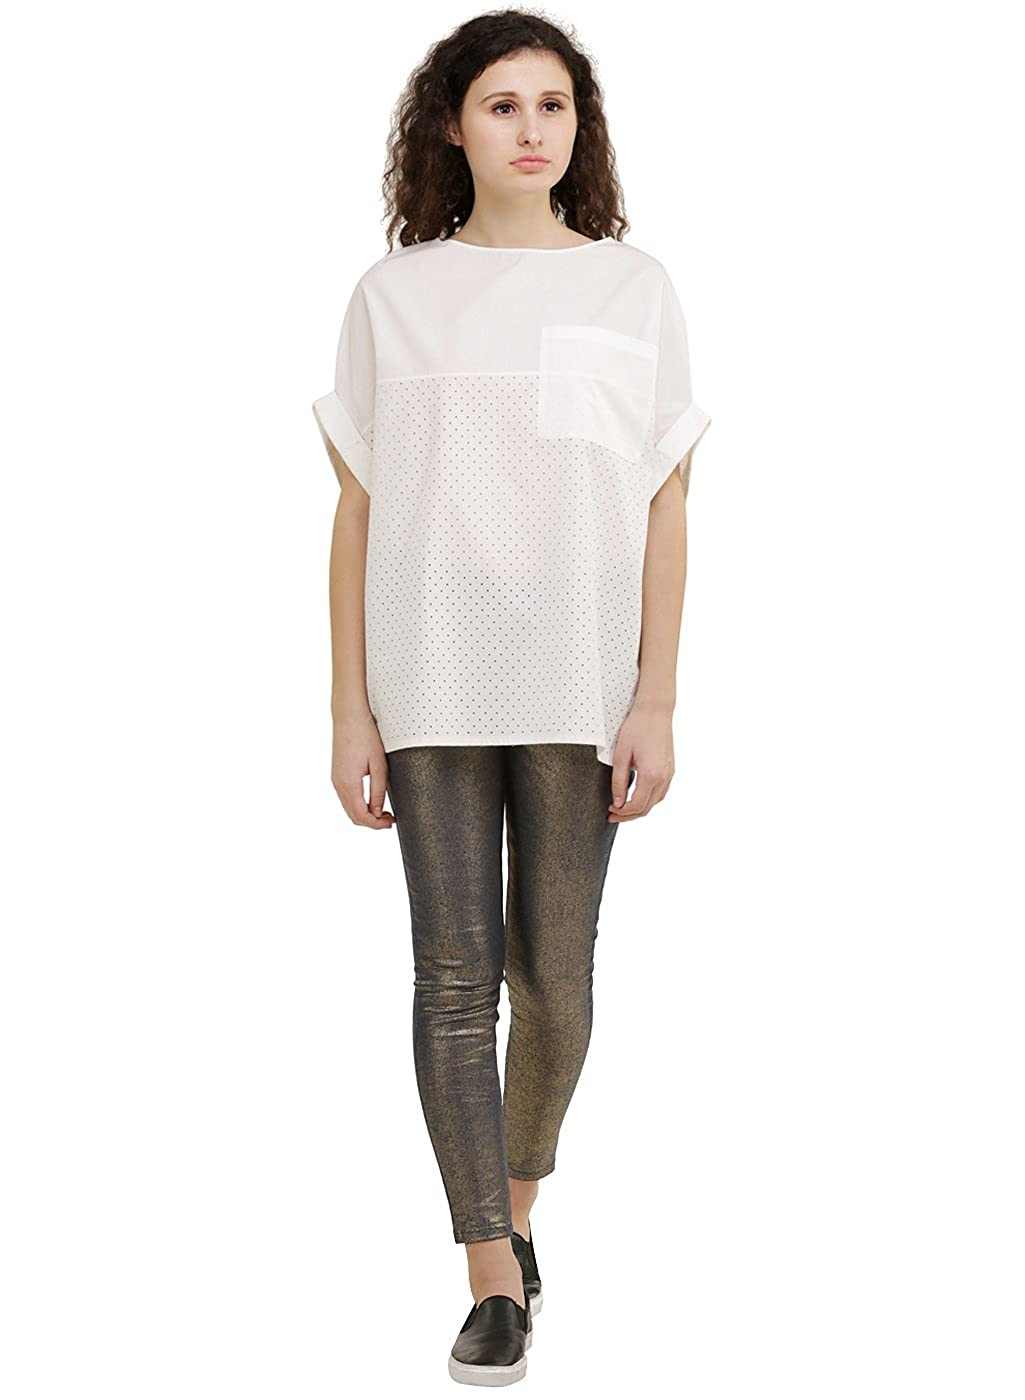 dbe36f40bab5e4 GENES - Lecoanet Hemant Oversized Off-white Top  Amazon.in  Clothing    Accessories